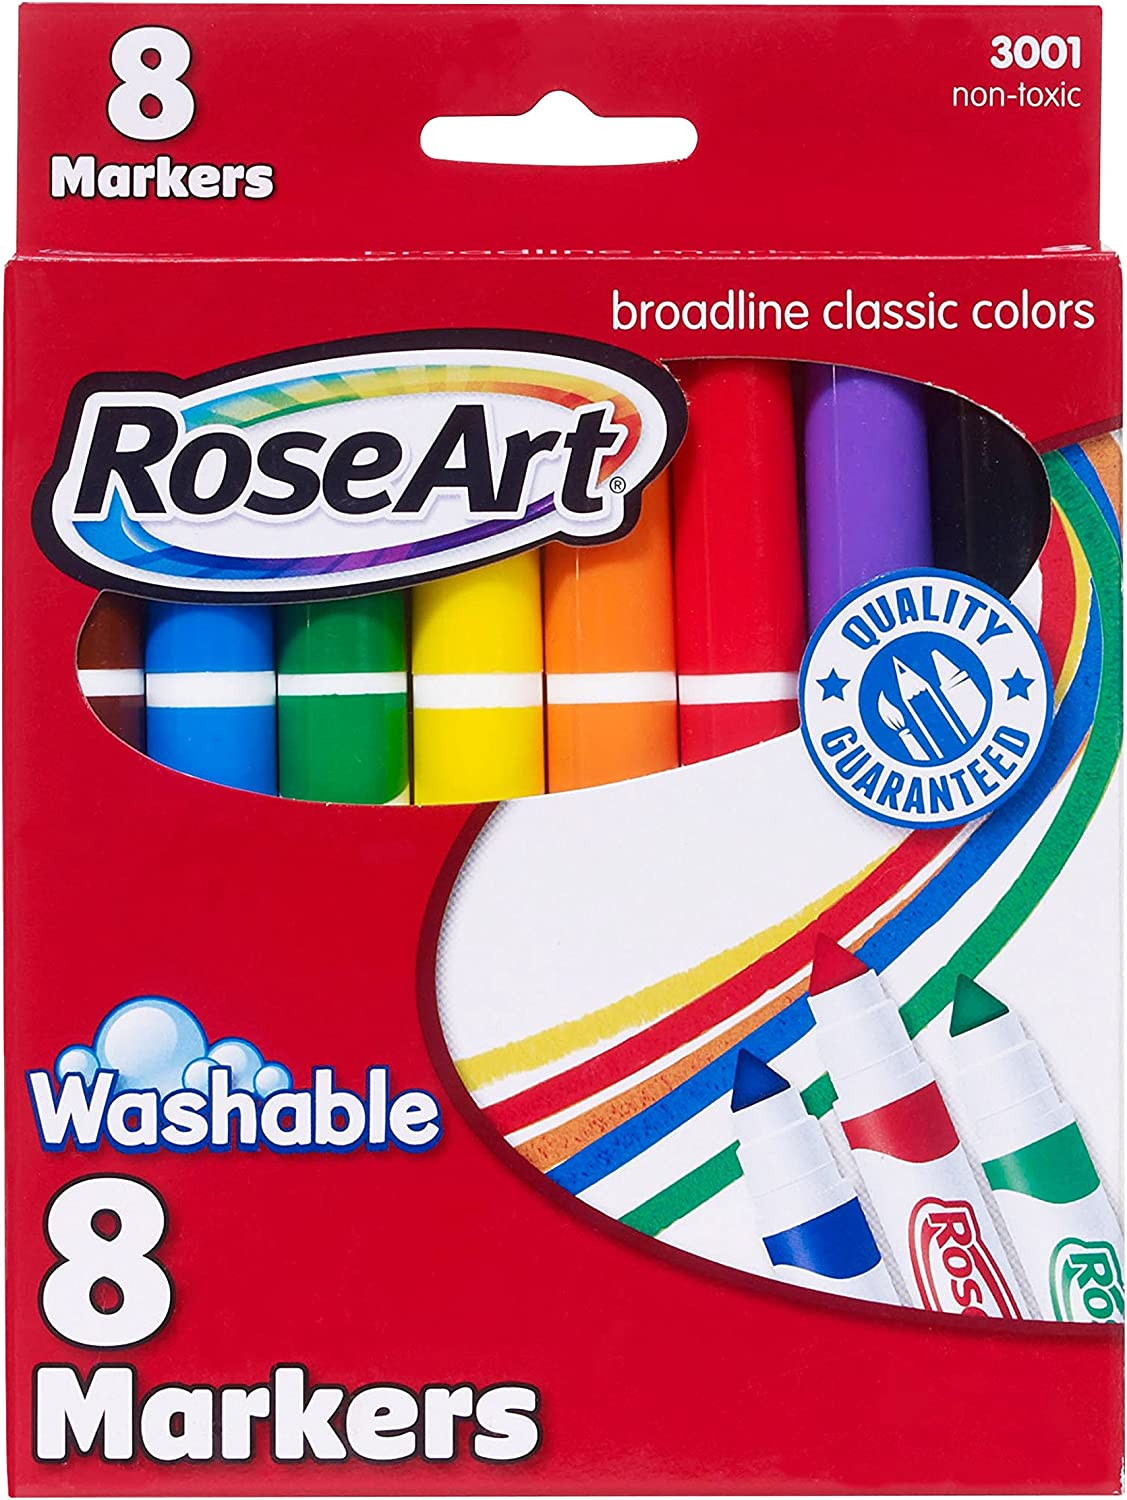 RoseArt Classic Washable Broadline Markers 8-Count Packaging May Vary DDT57 Mattel